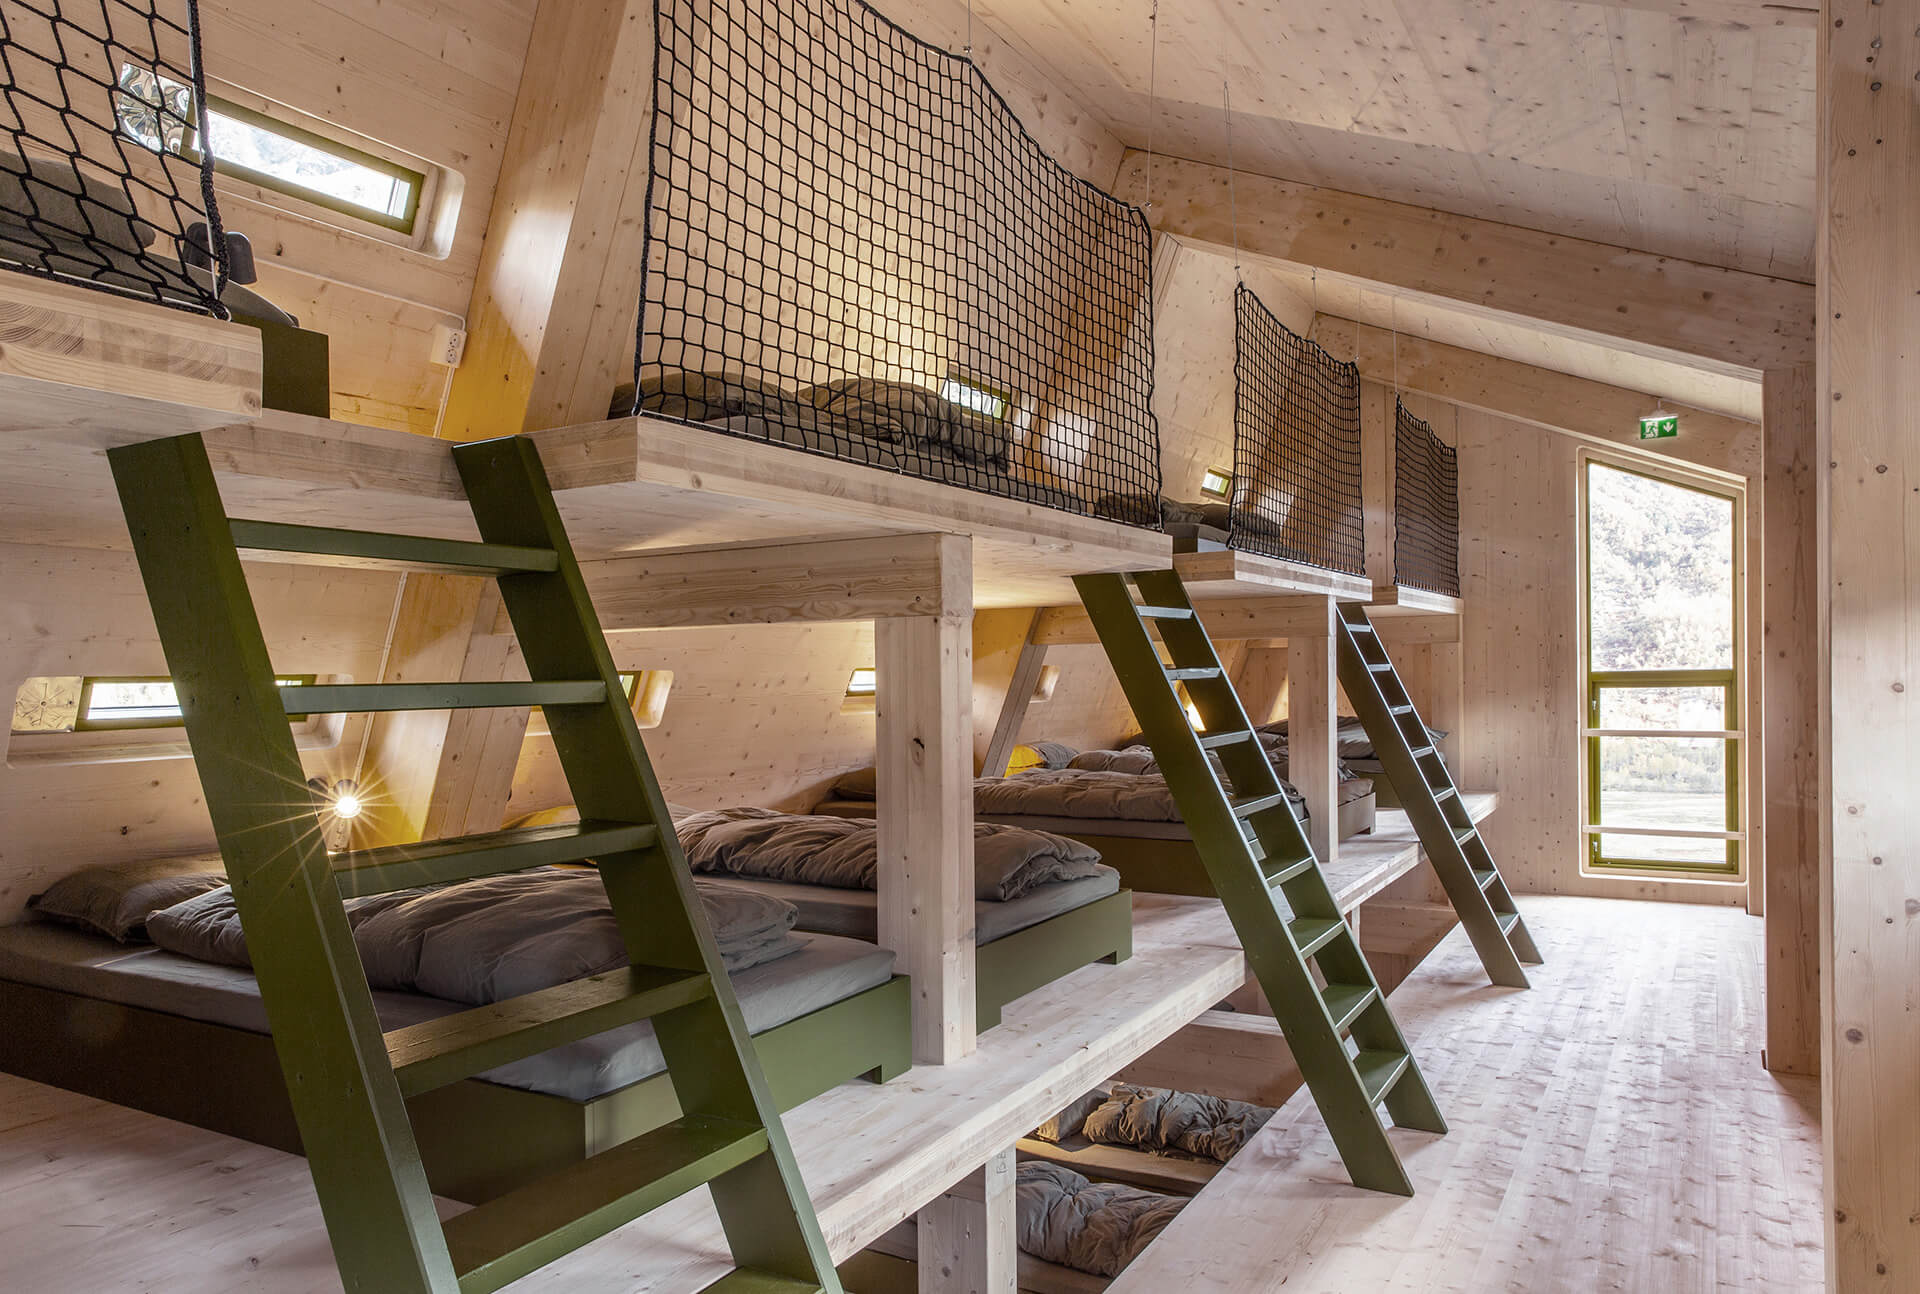 Olive green ladders used to access bunk beds inside Tungestølen | Tungestølen Hiking Cabin by Snøhetta | STIRworld